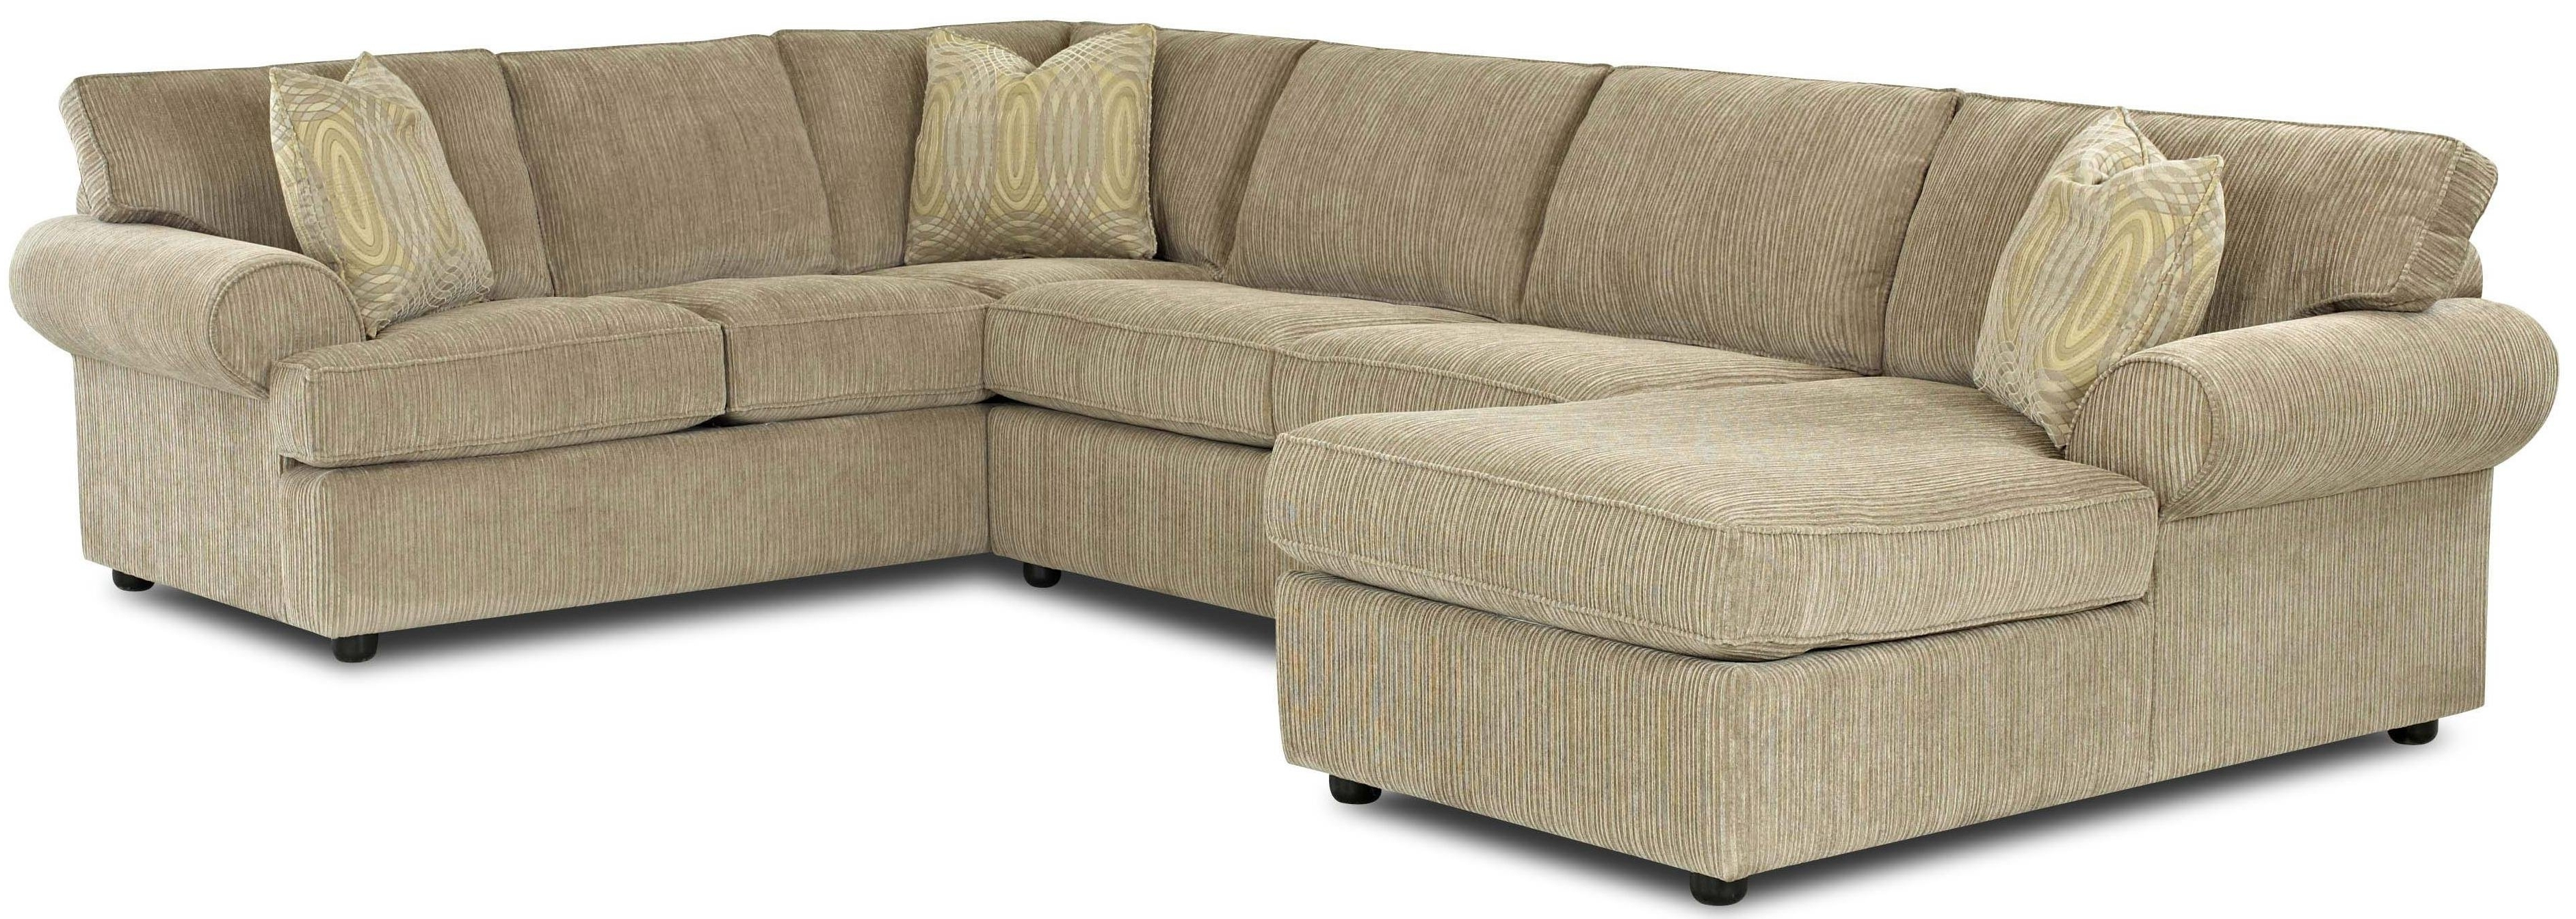 2018 Attractive Sectional Sleeper Sofa With Chaise Fantastic Furniture Pertaining To Jennifer Convertibles Sectional Sofas (View 2 of 20)